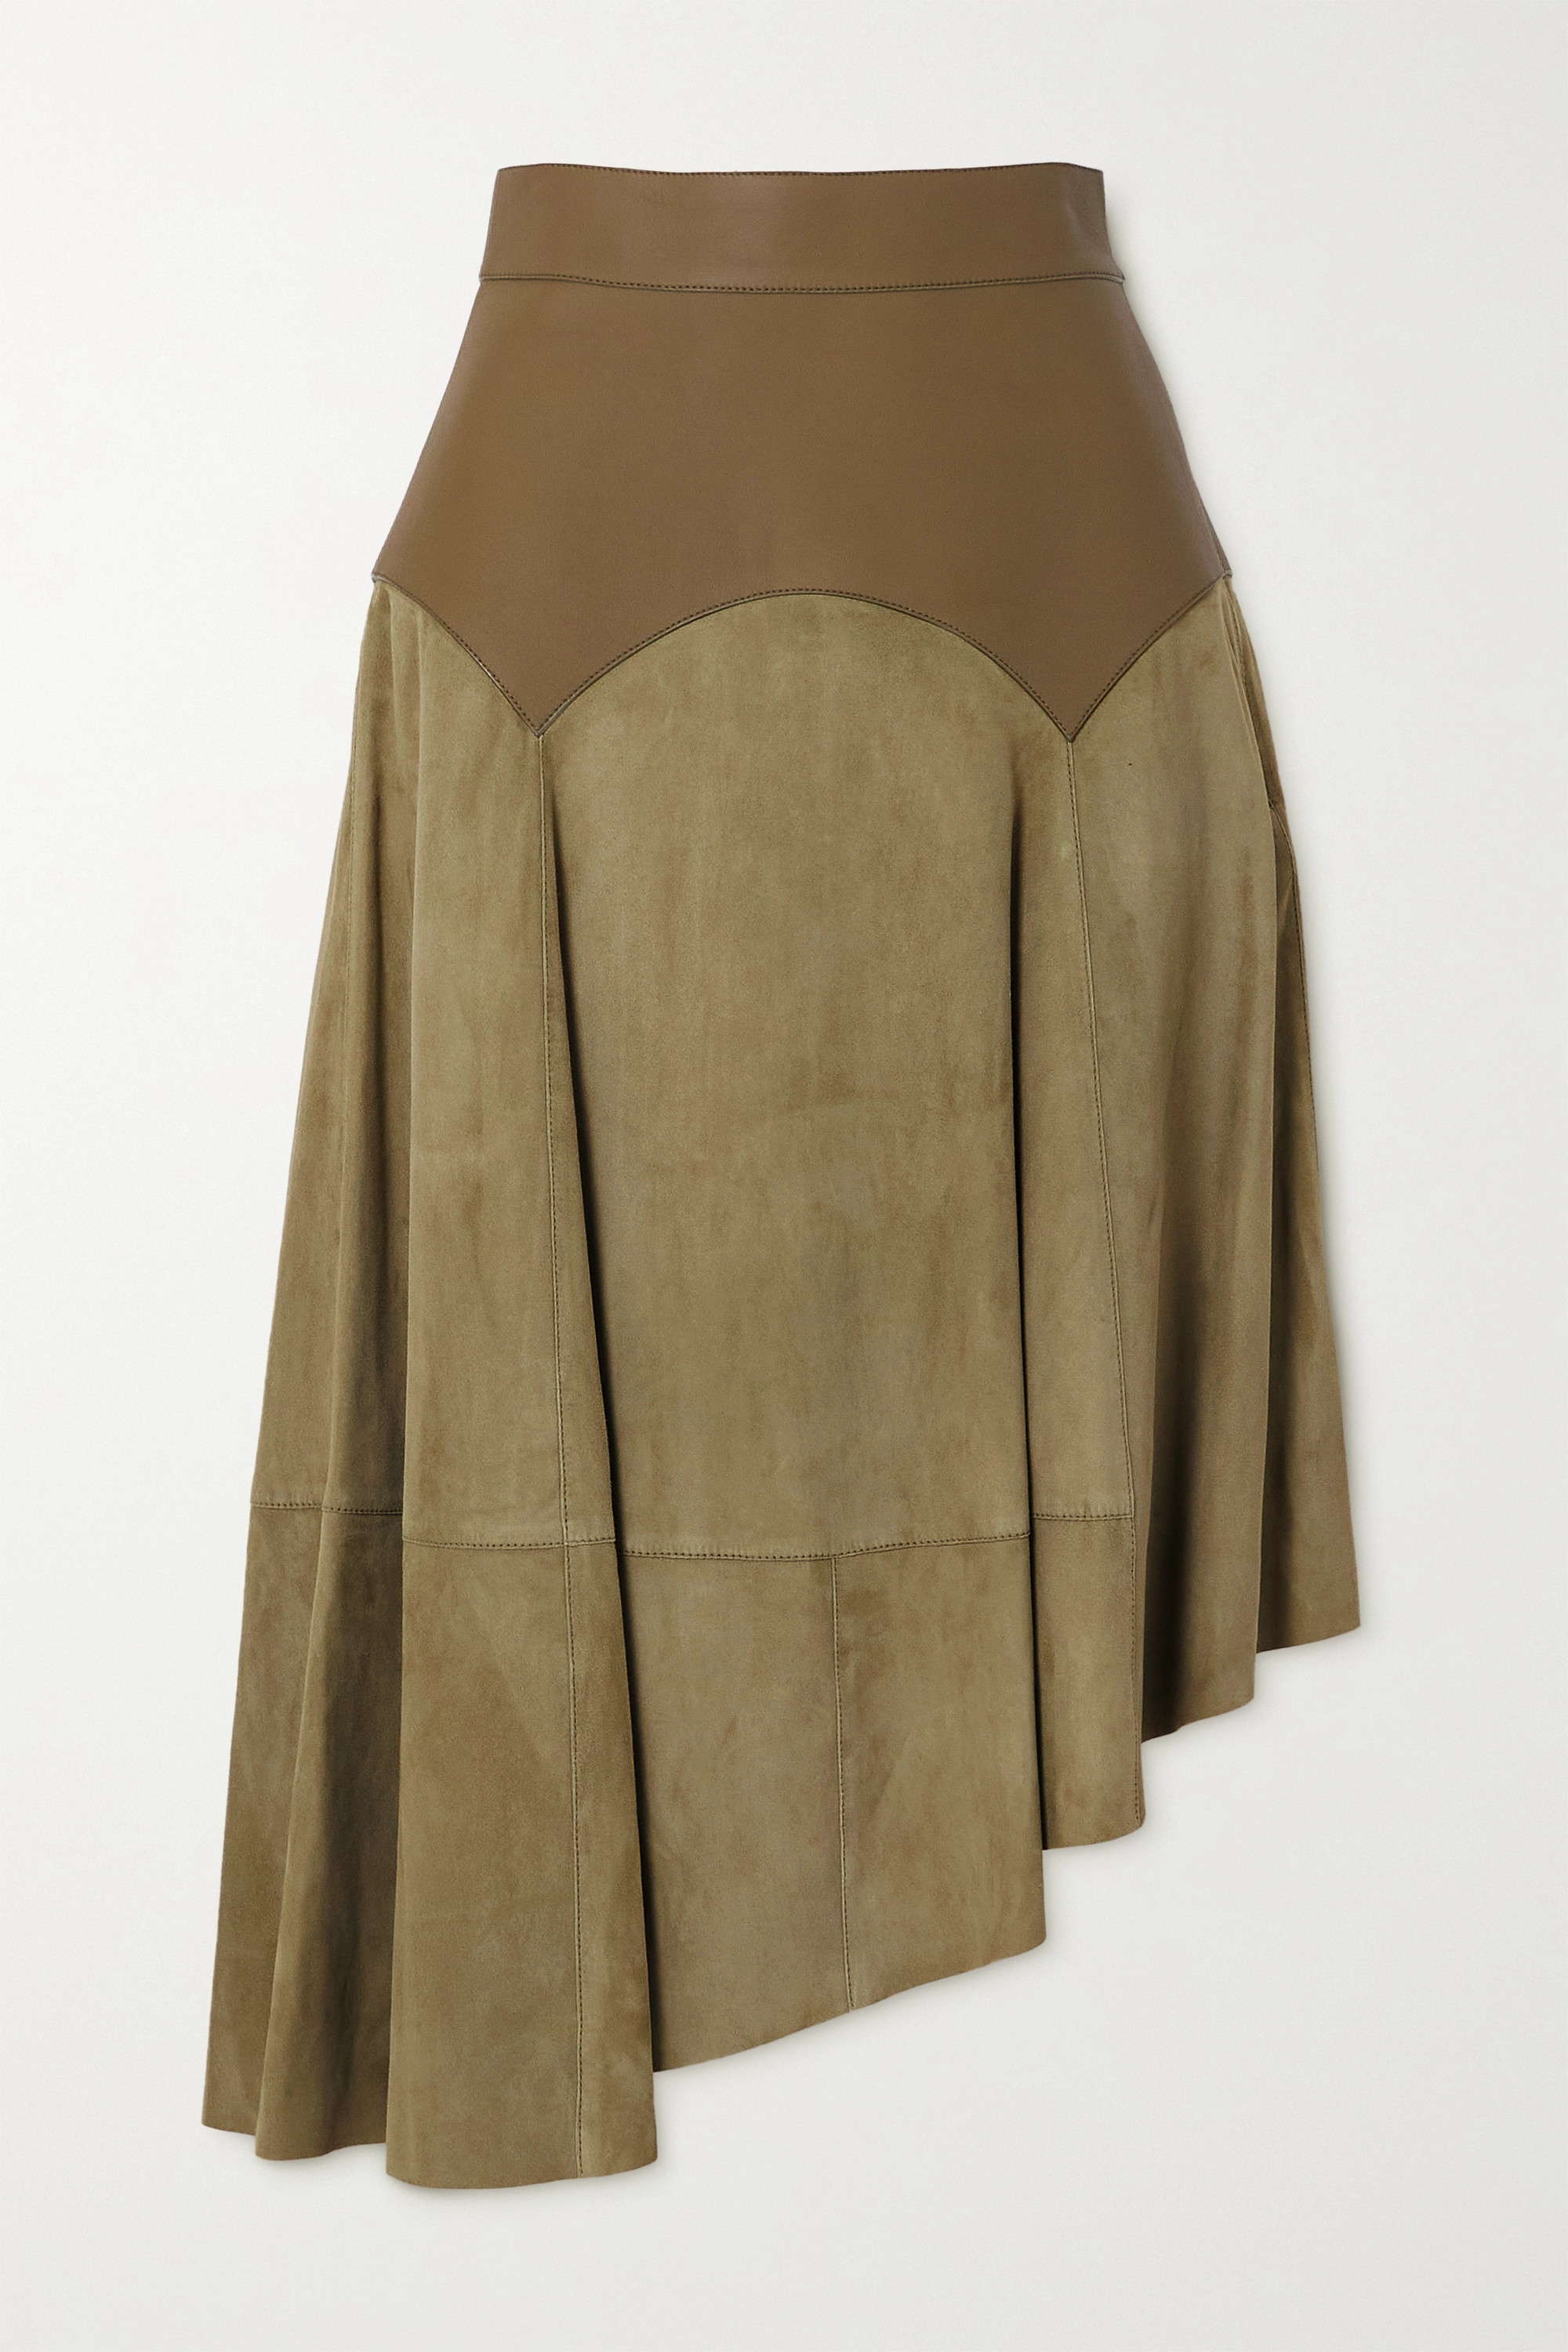 Loewe Obi asymmetric leather and suede skirt